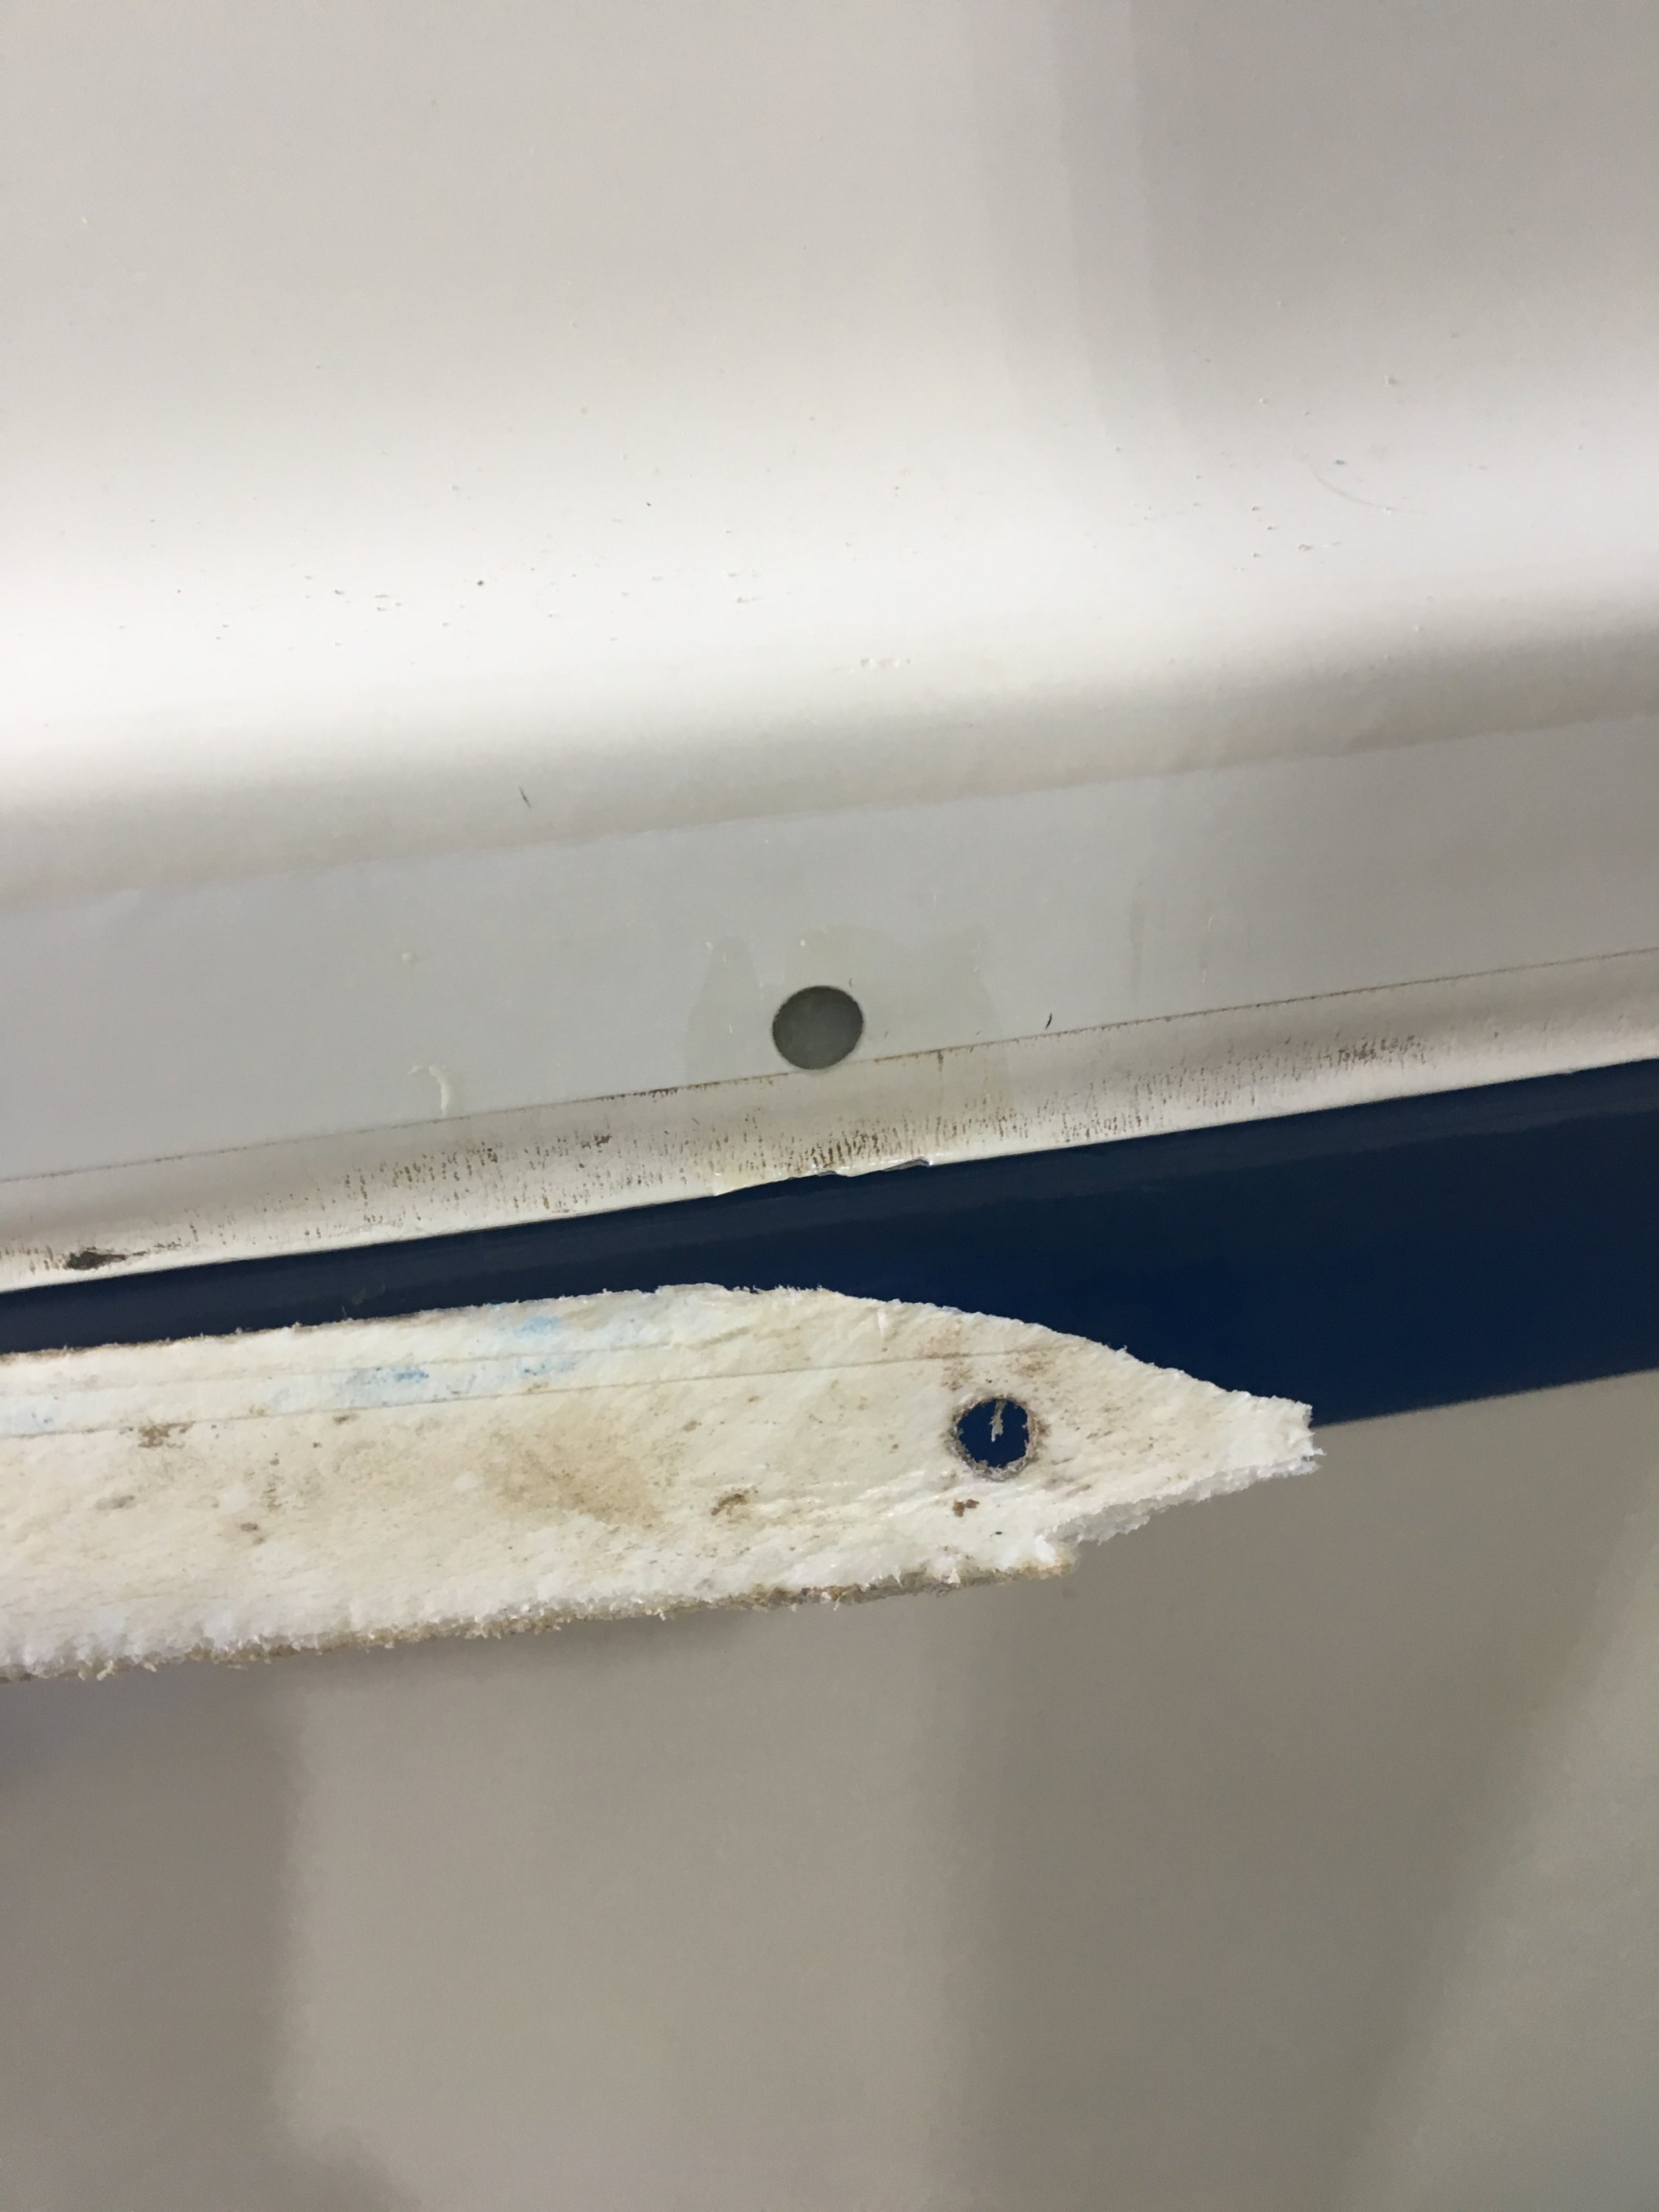 26S rub rail restauration?   Sailboat Owners Forums